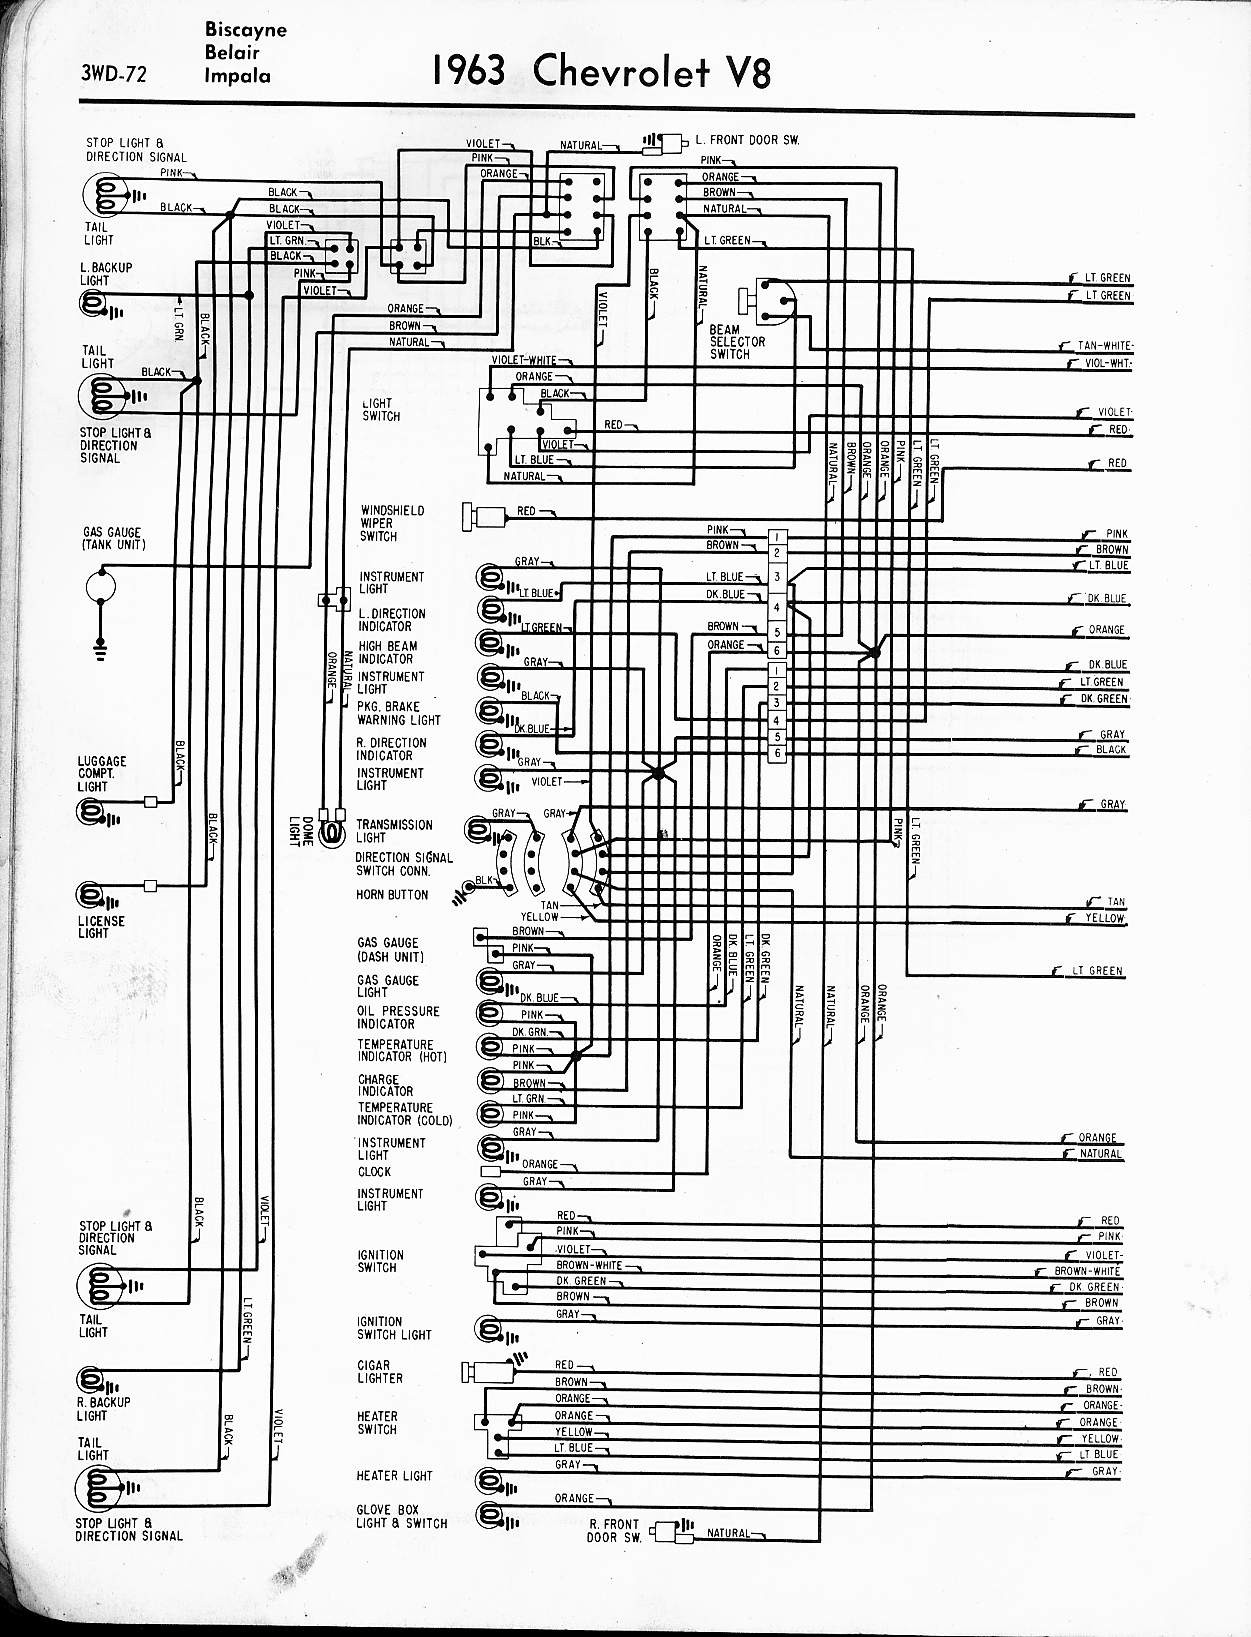 Wiring Diagram PDF: 01 Impala Wiring Harness Diagram